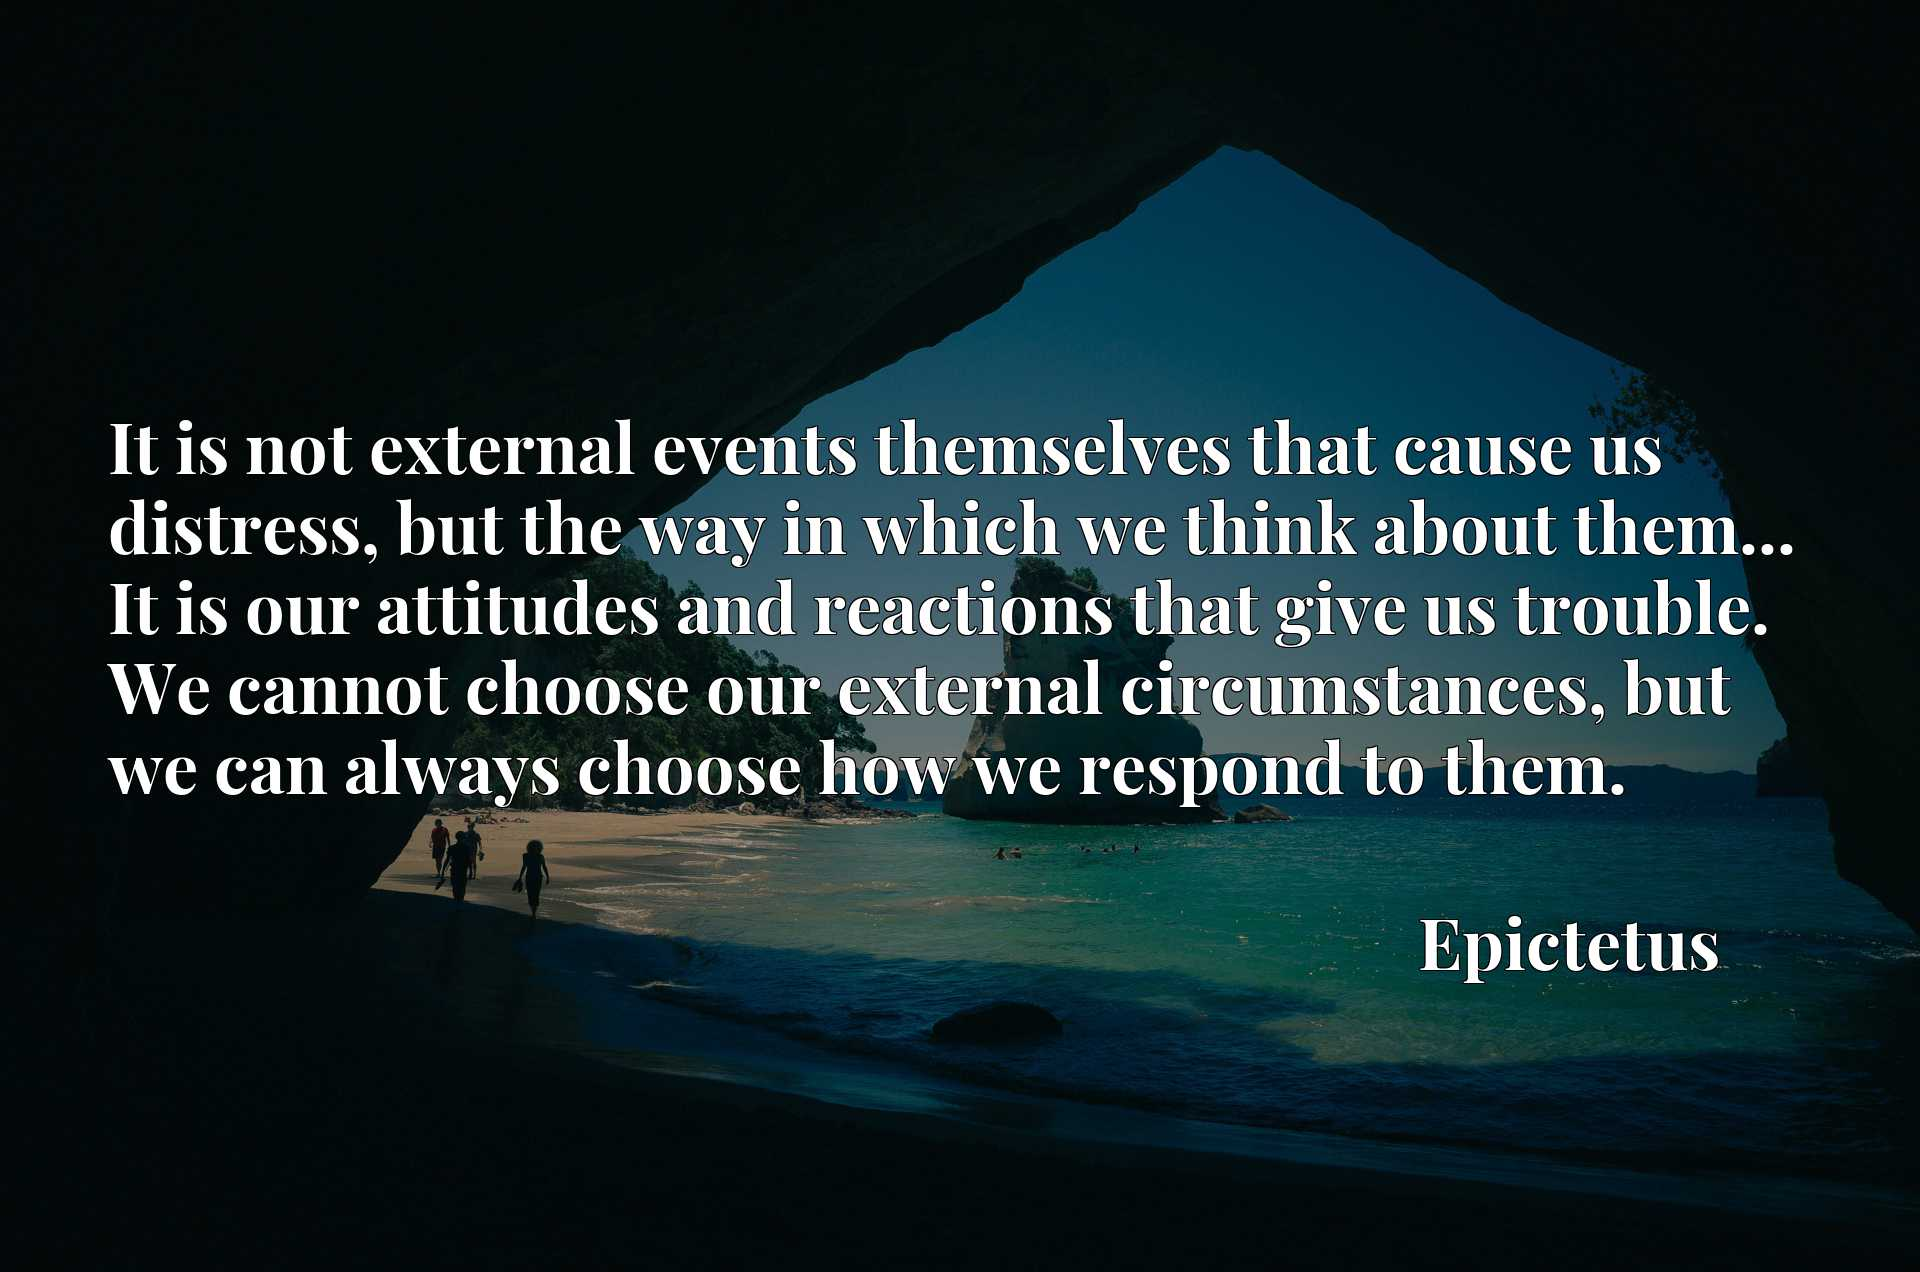 It is not external events themselves that cause us distress, but the way in which we think about them... It is our attitudes and reactions that give us trouble. We cannot choose our external circumstances, but we can always choose how we respond to them.